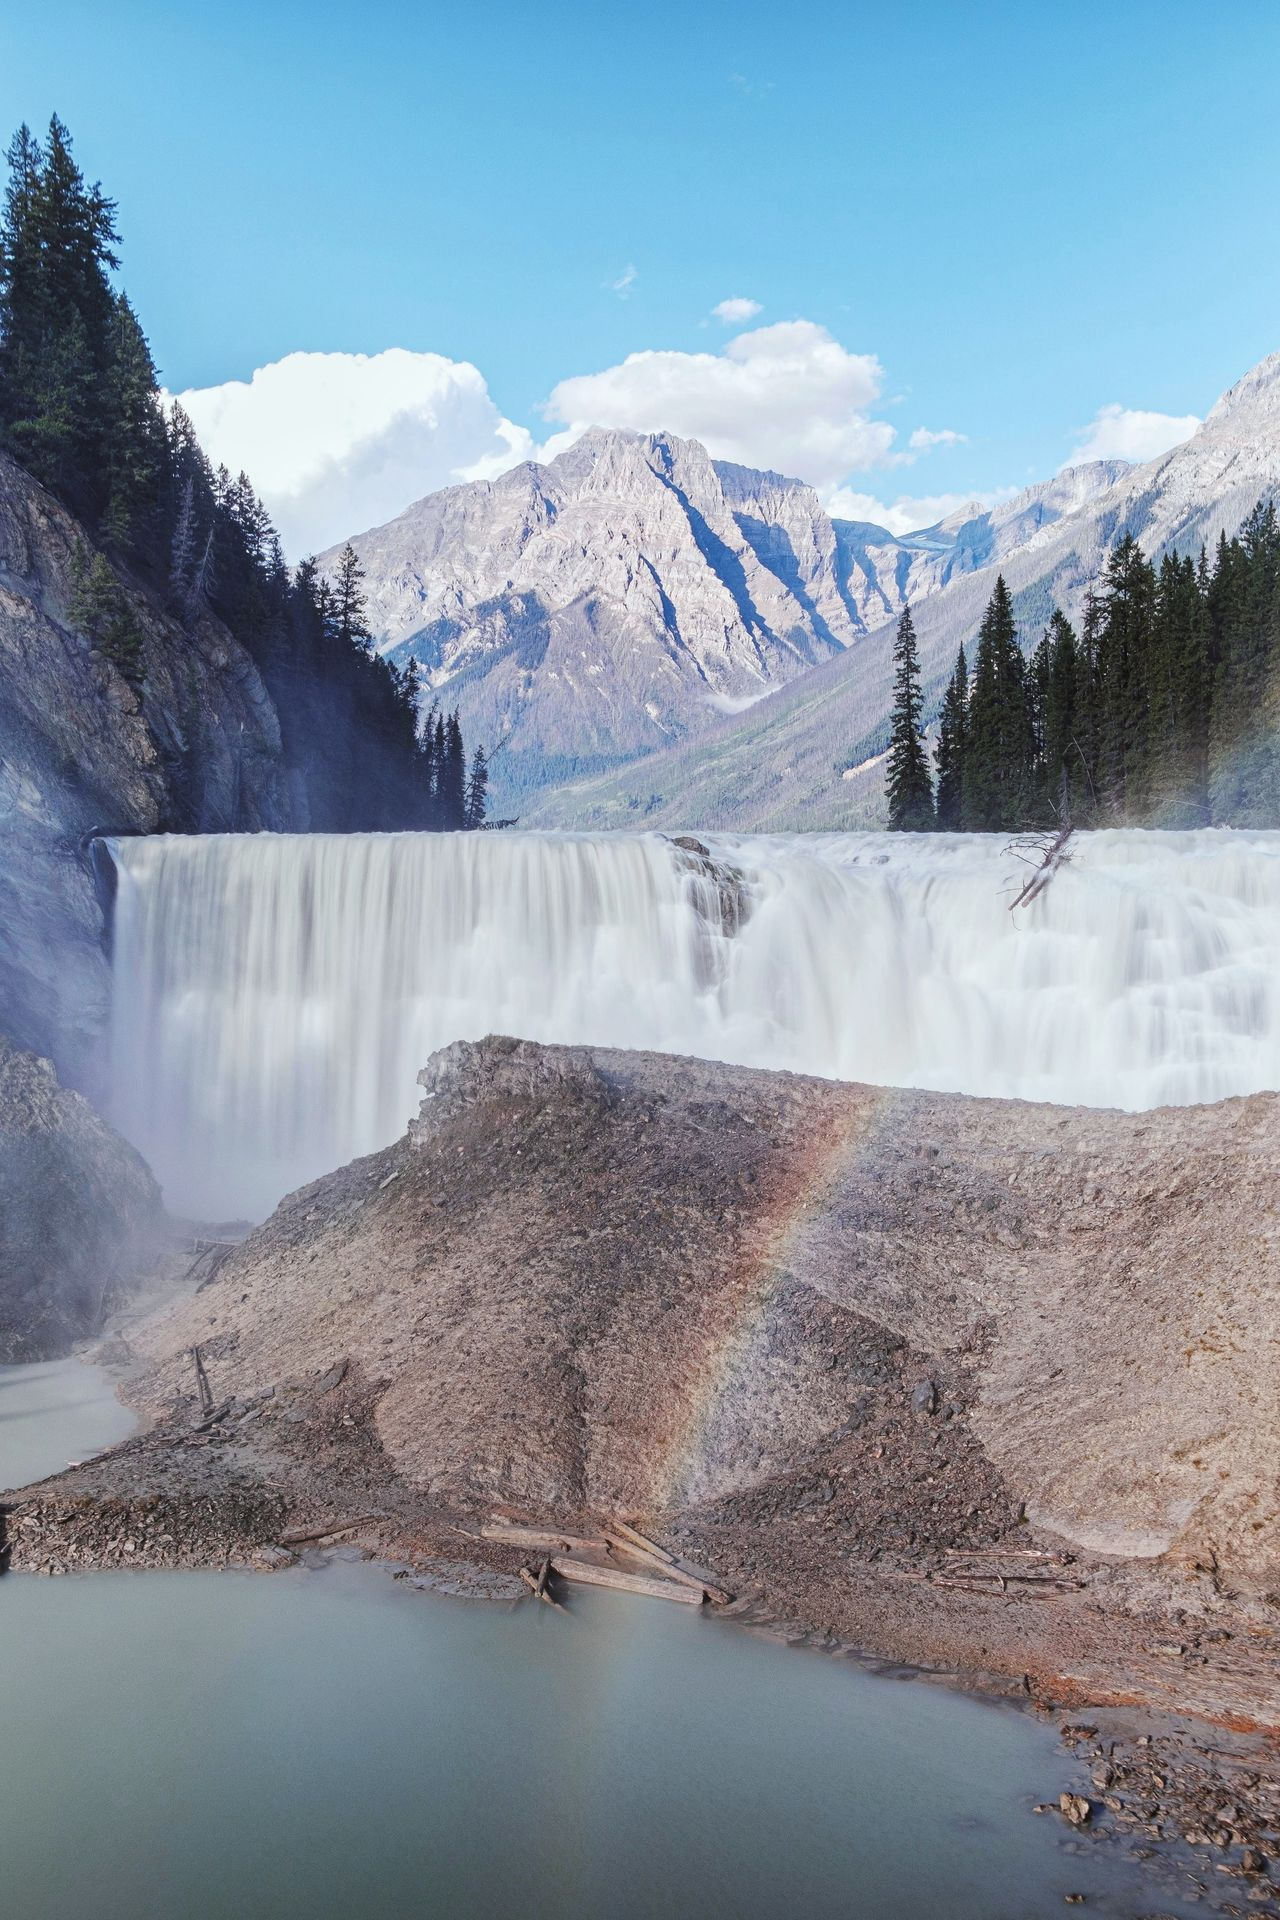 Blurred motion of waterfall against mountains